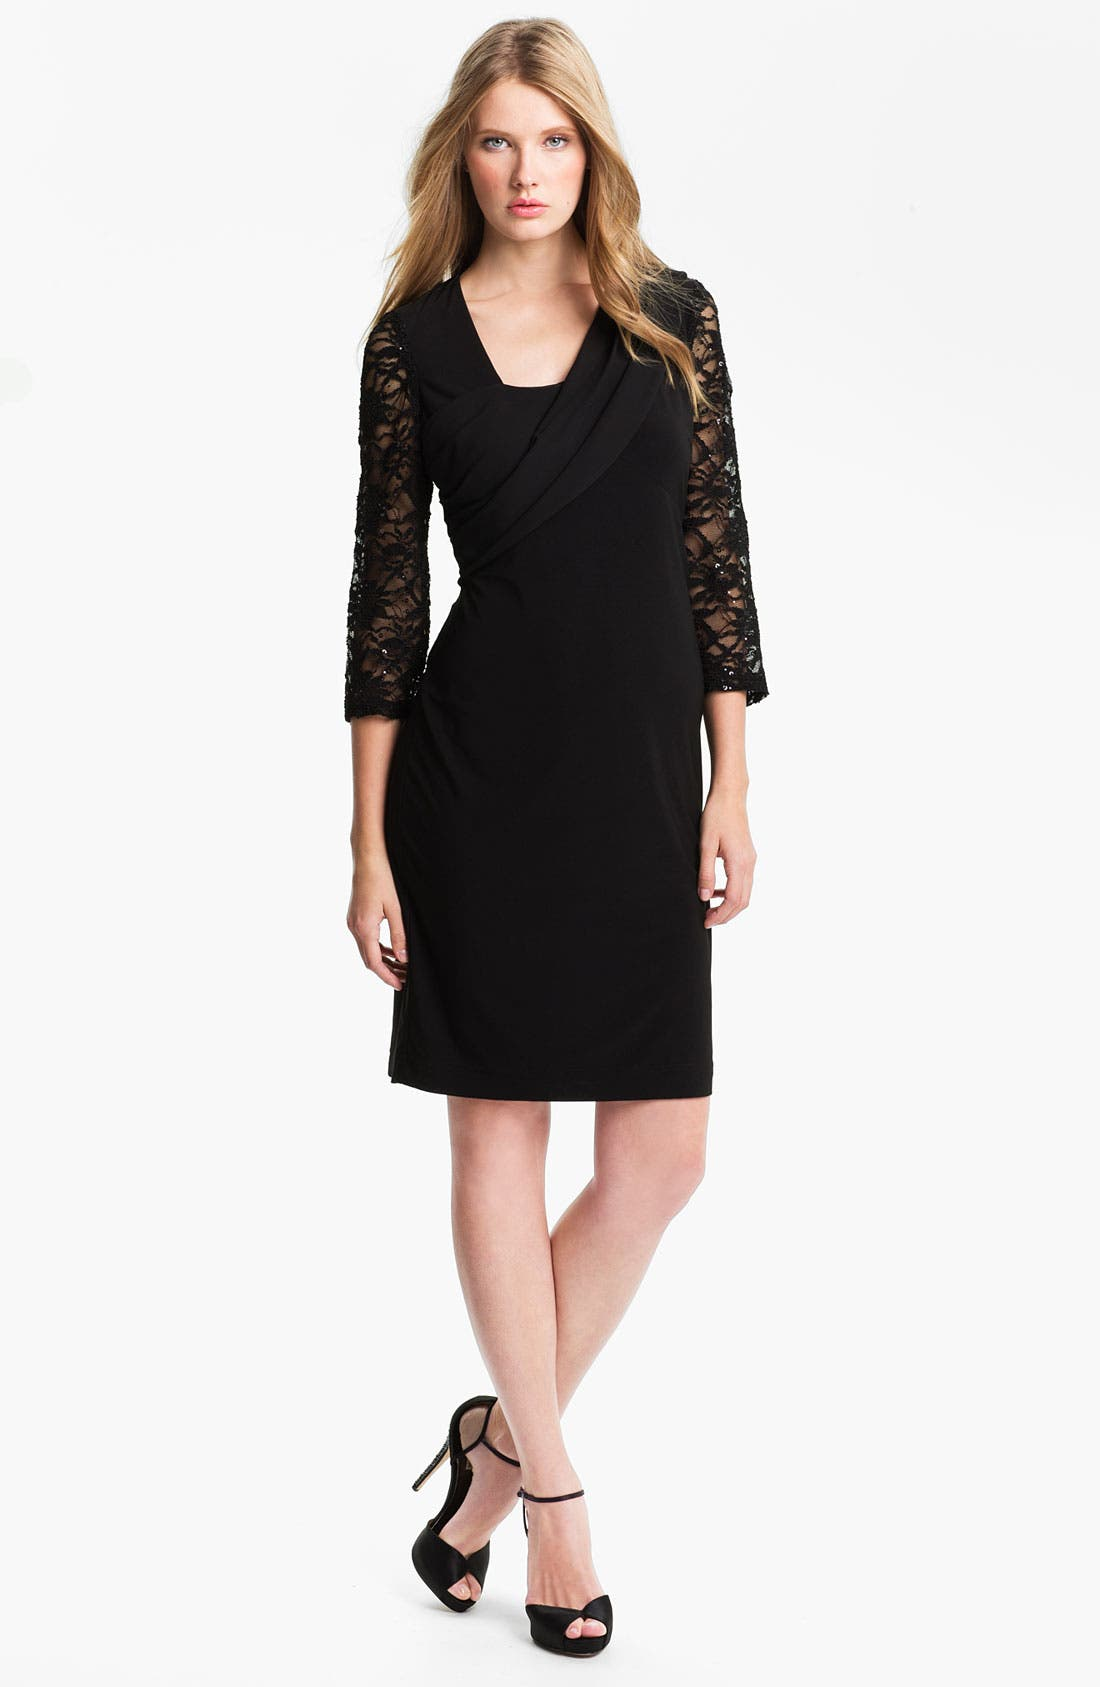 Alternate Image 1 Selected - Alex Evenings Chiffon Detail Jersey Shift Dress (Petite)